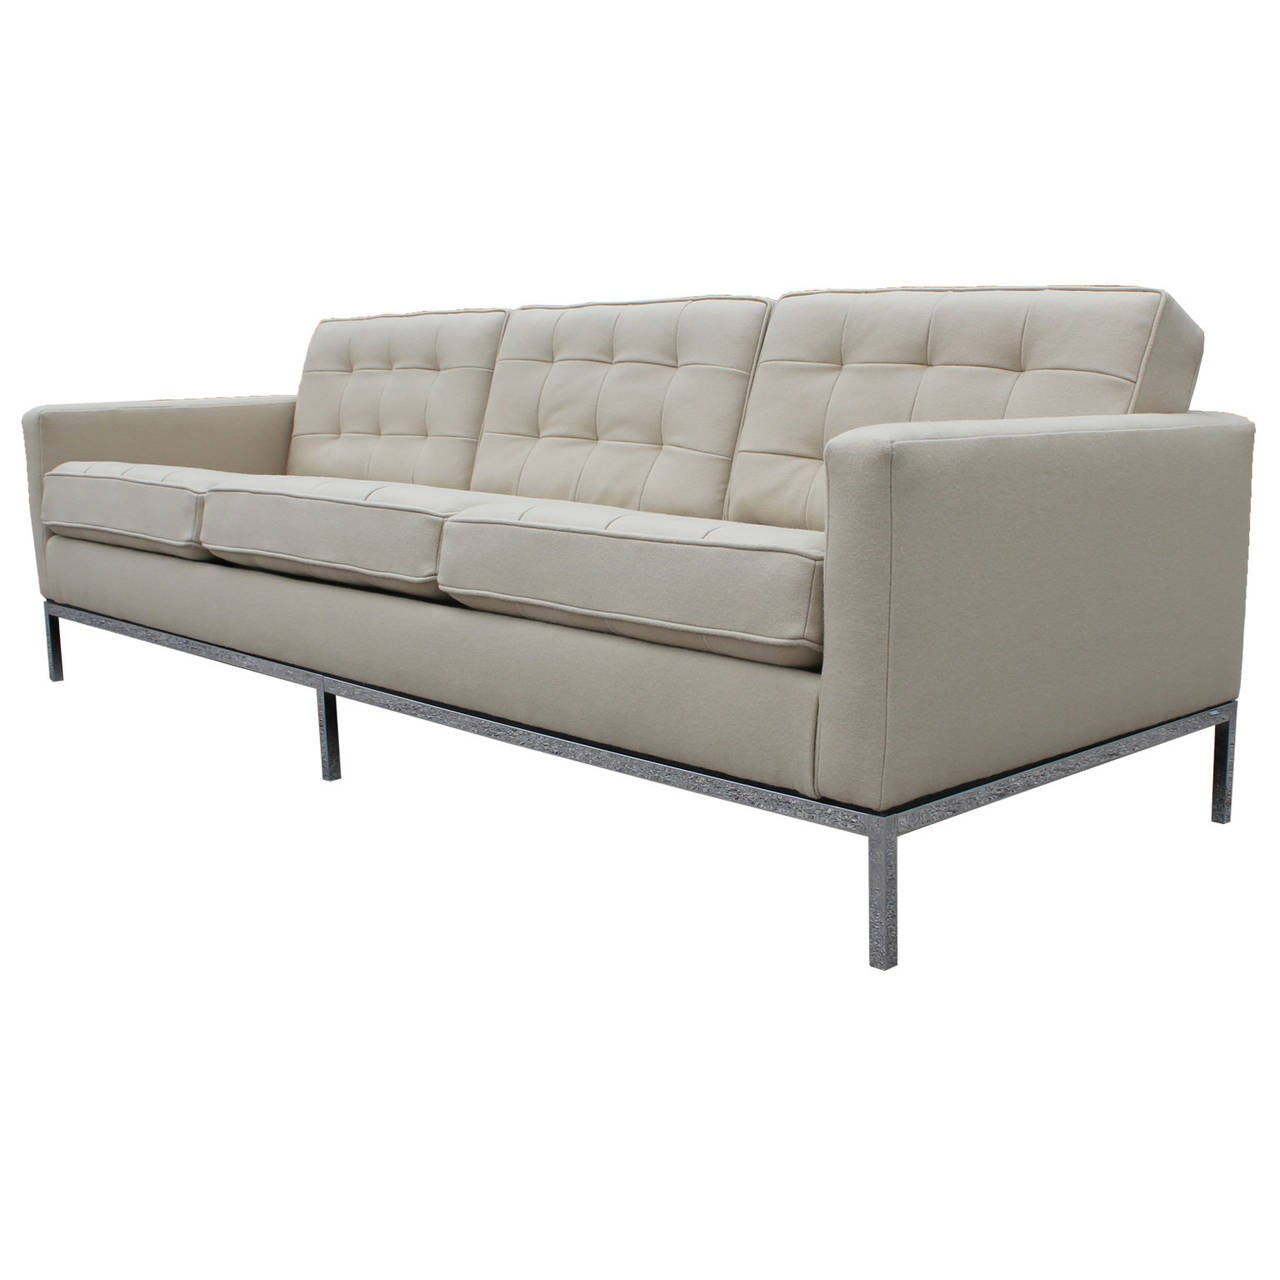 florence knoll sofa upholstered in neutral divina wool at 1stdibs. Black Bedroom Furniture Sets. Home Design Ideas